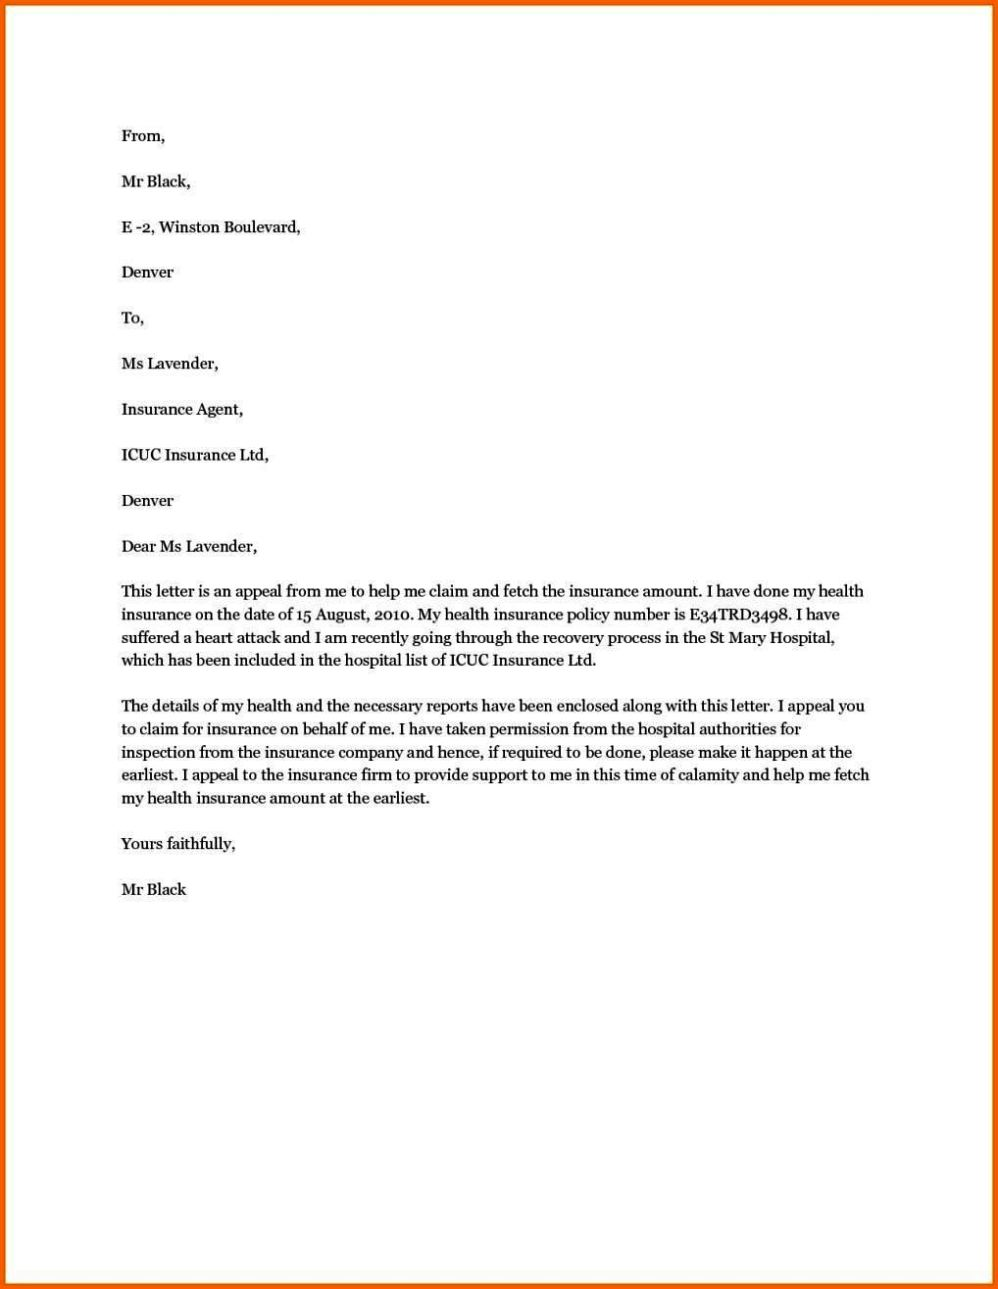 writing an appeal letter to health insurance company - sampletemplatess